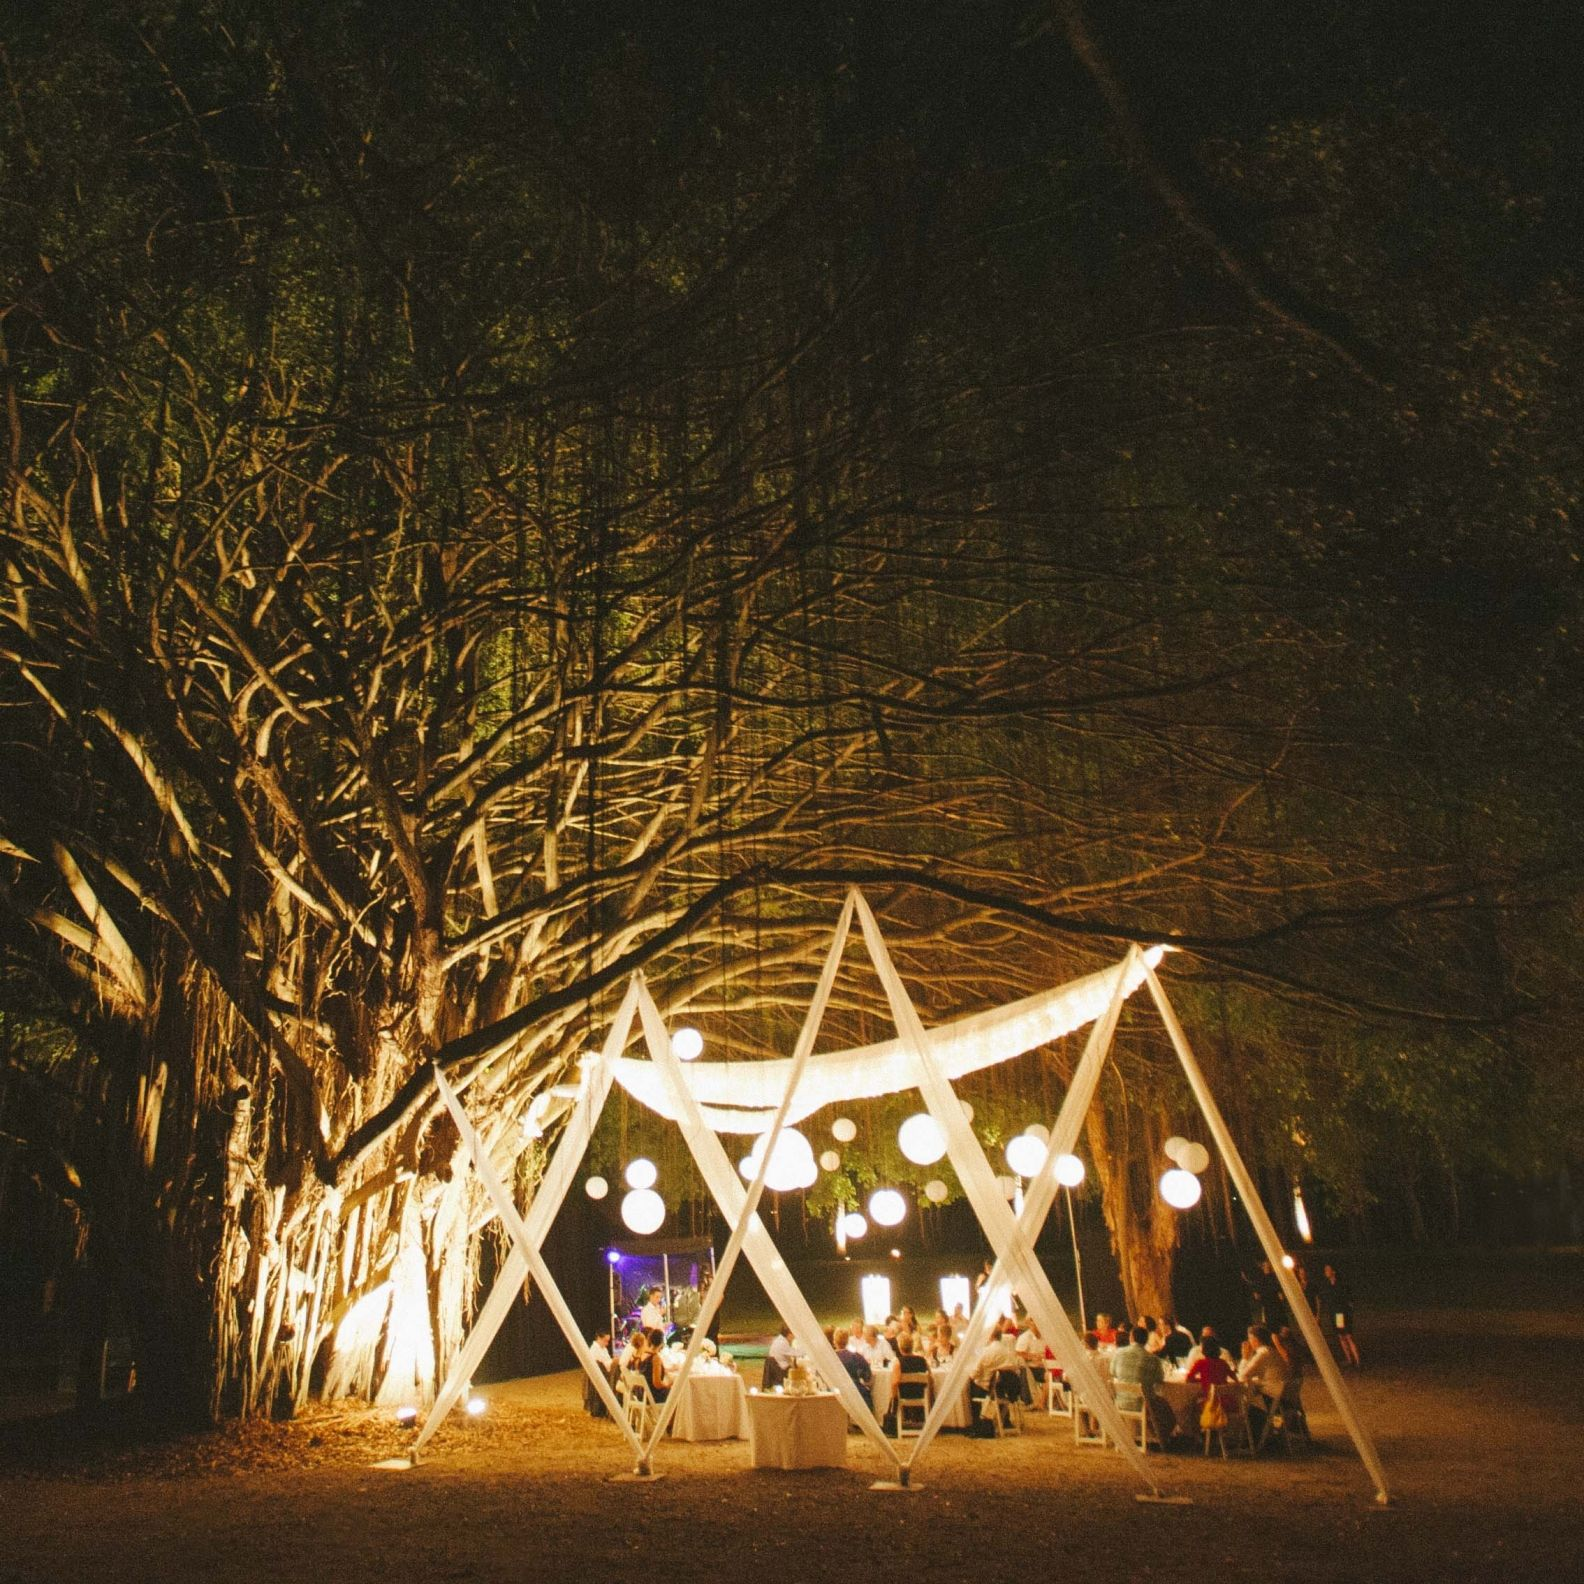 Eventcore Specialising In Port Douglas Wedding Theming Equipment And Hire